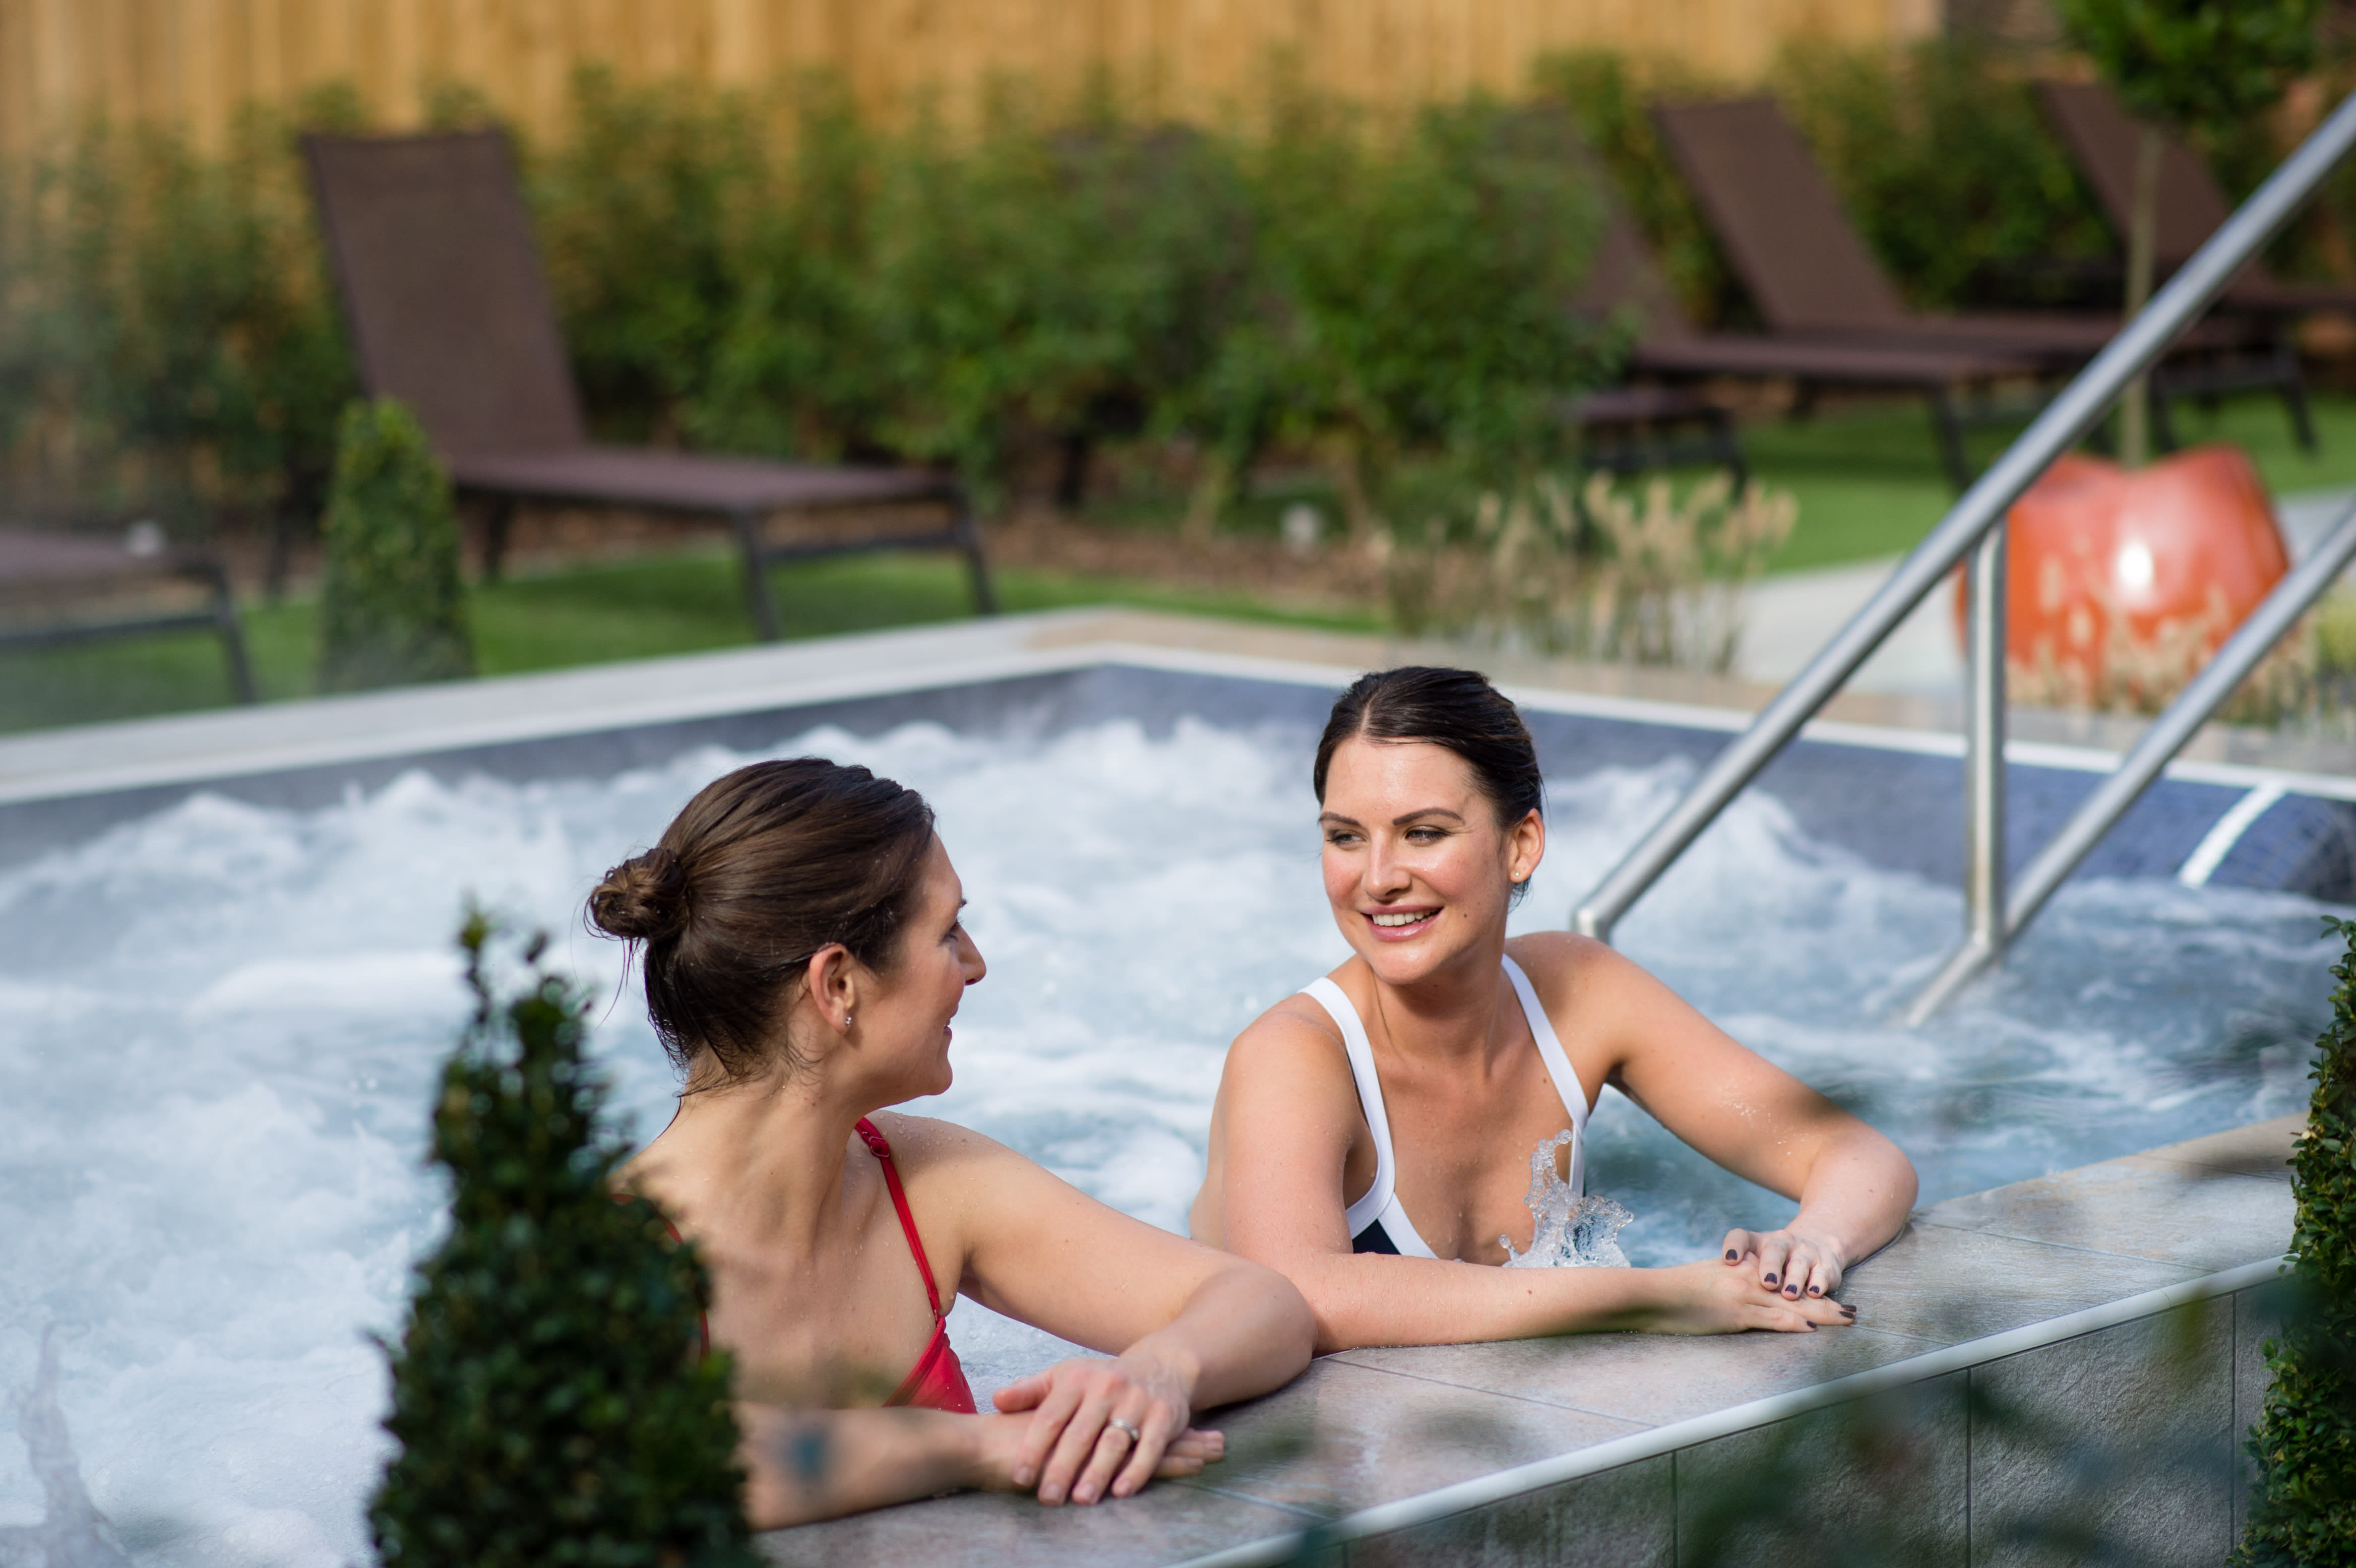 Two friends enjoying the whirlpool in the Spa Garden